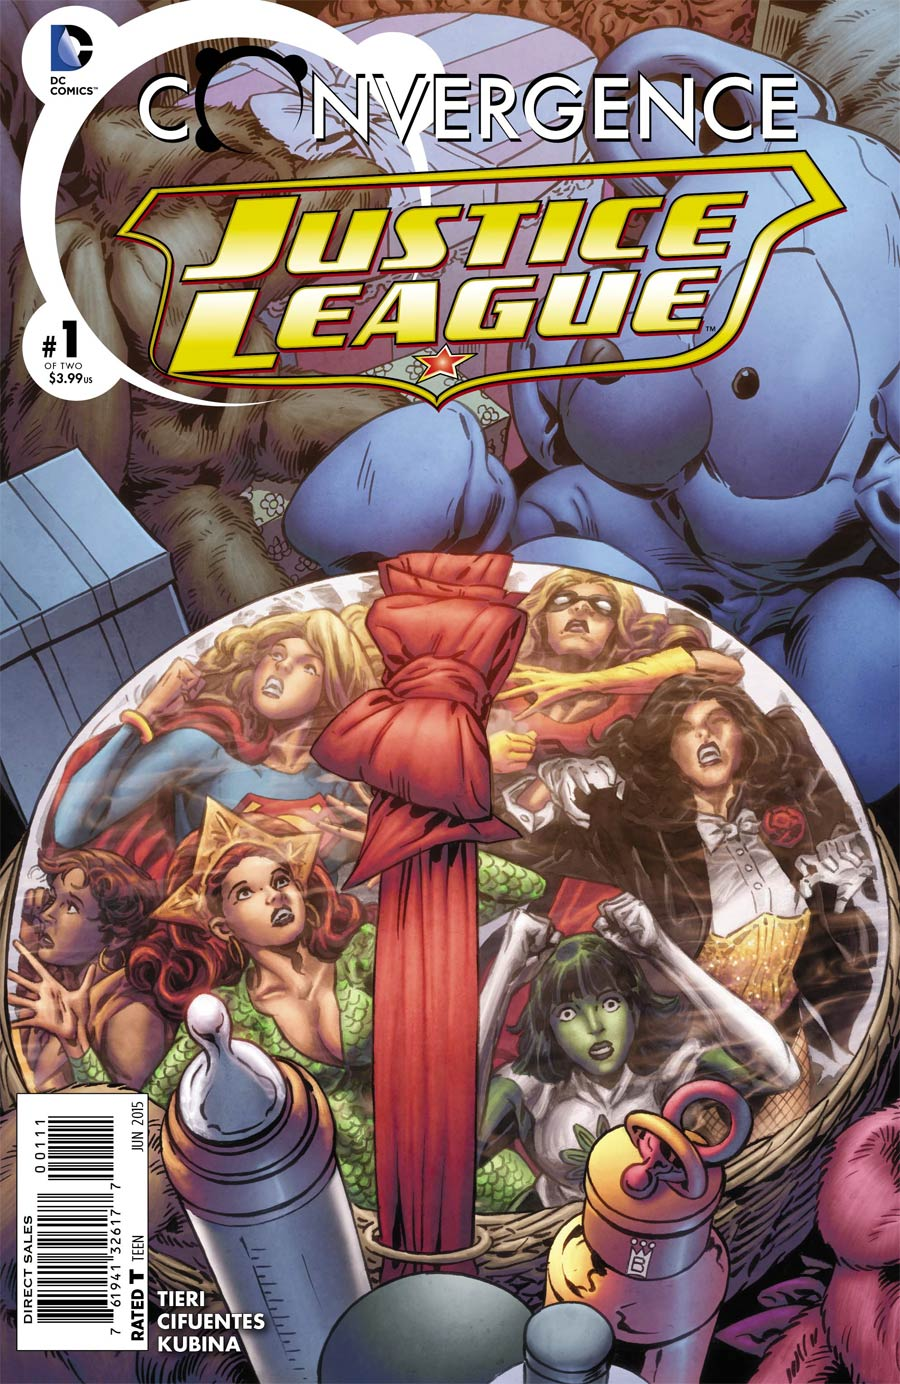 Convergence Justice League #1 Cover A Regular Mark Buckingham Cover